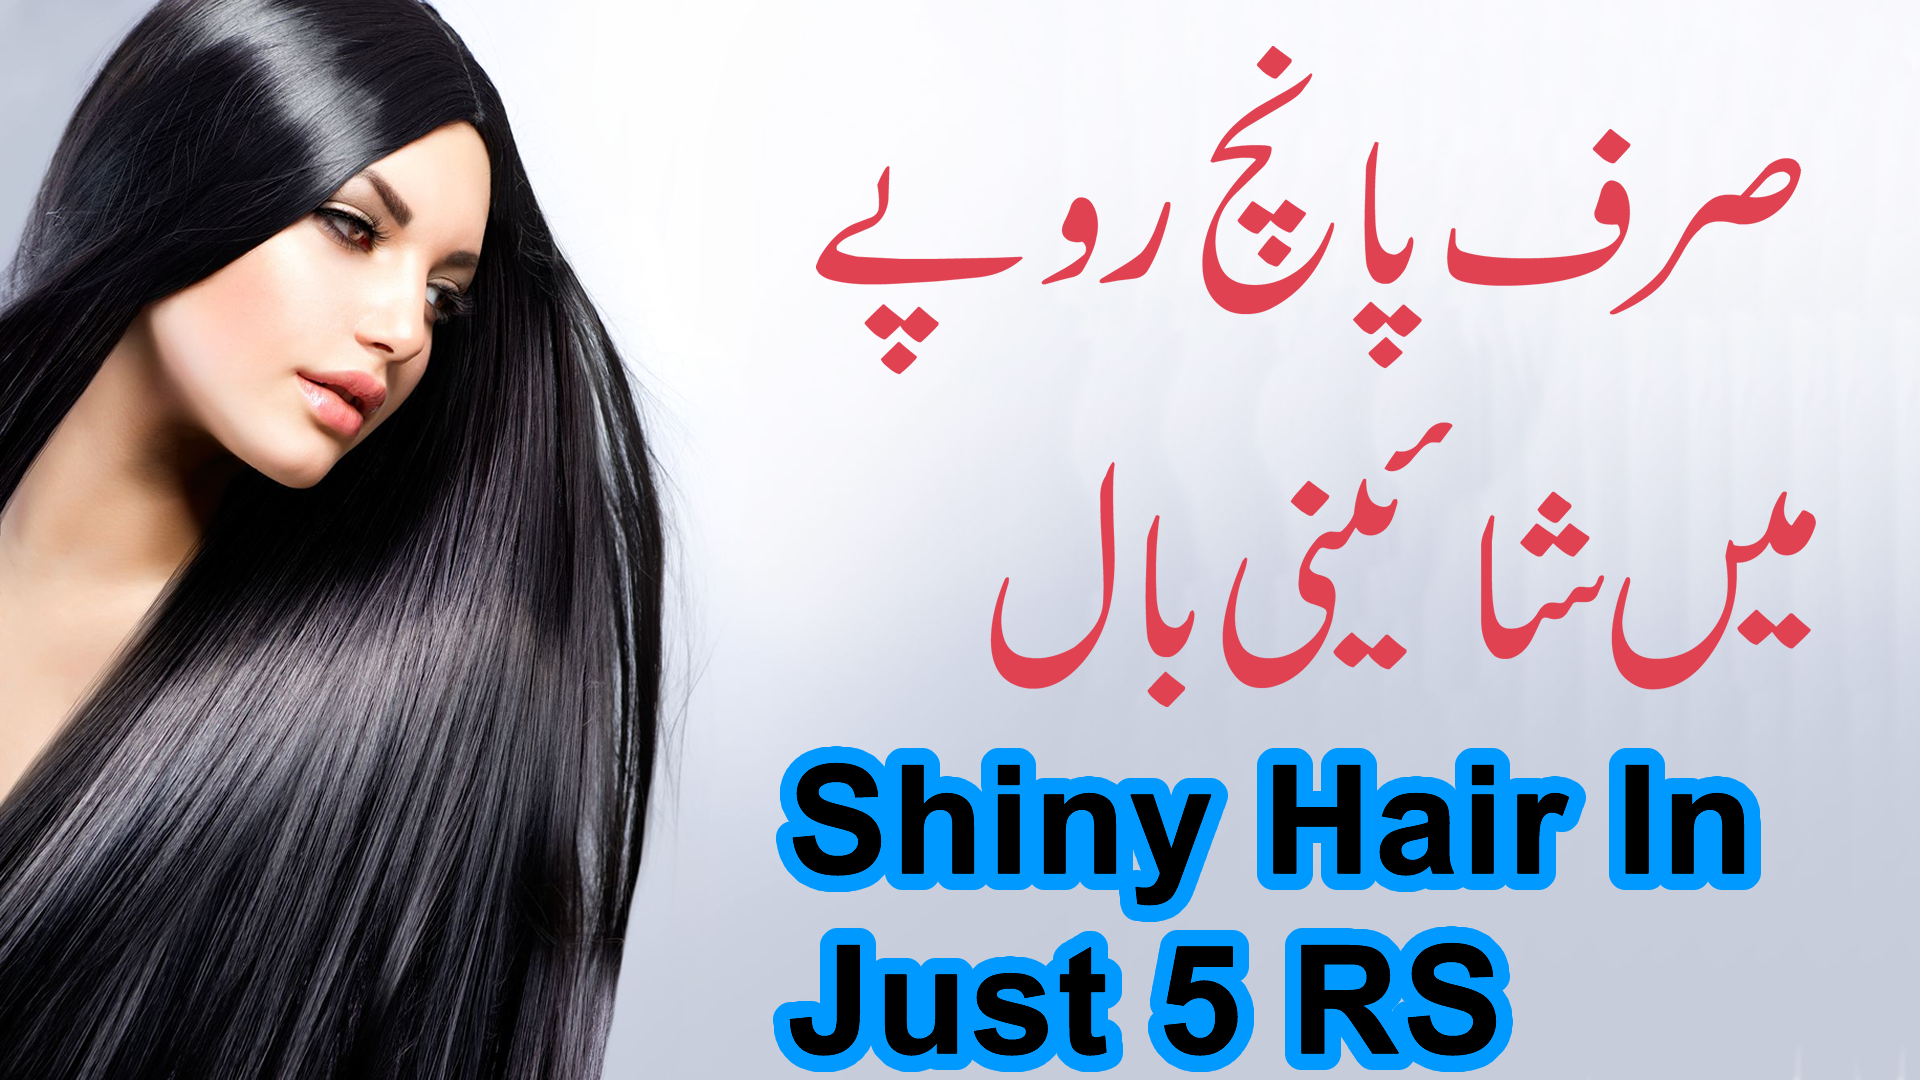 Homemade Tips For Silky And Shiny Hair Only 1 Ingredient Use Dry Tea Leaves Balon Ko Shiny Kaisay Banaye Bohut Lo Silky Hair Shiny Hair Health And Beauty Tips